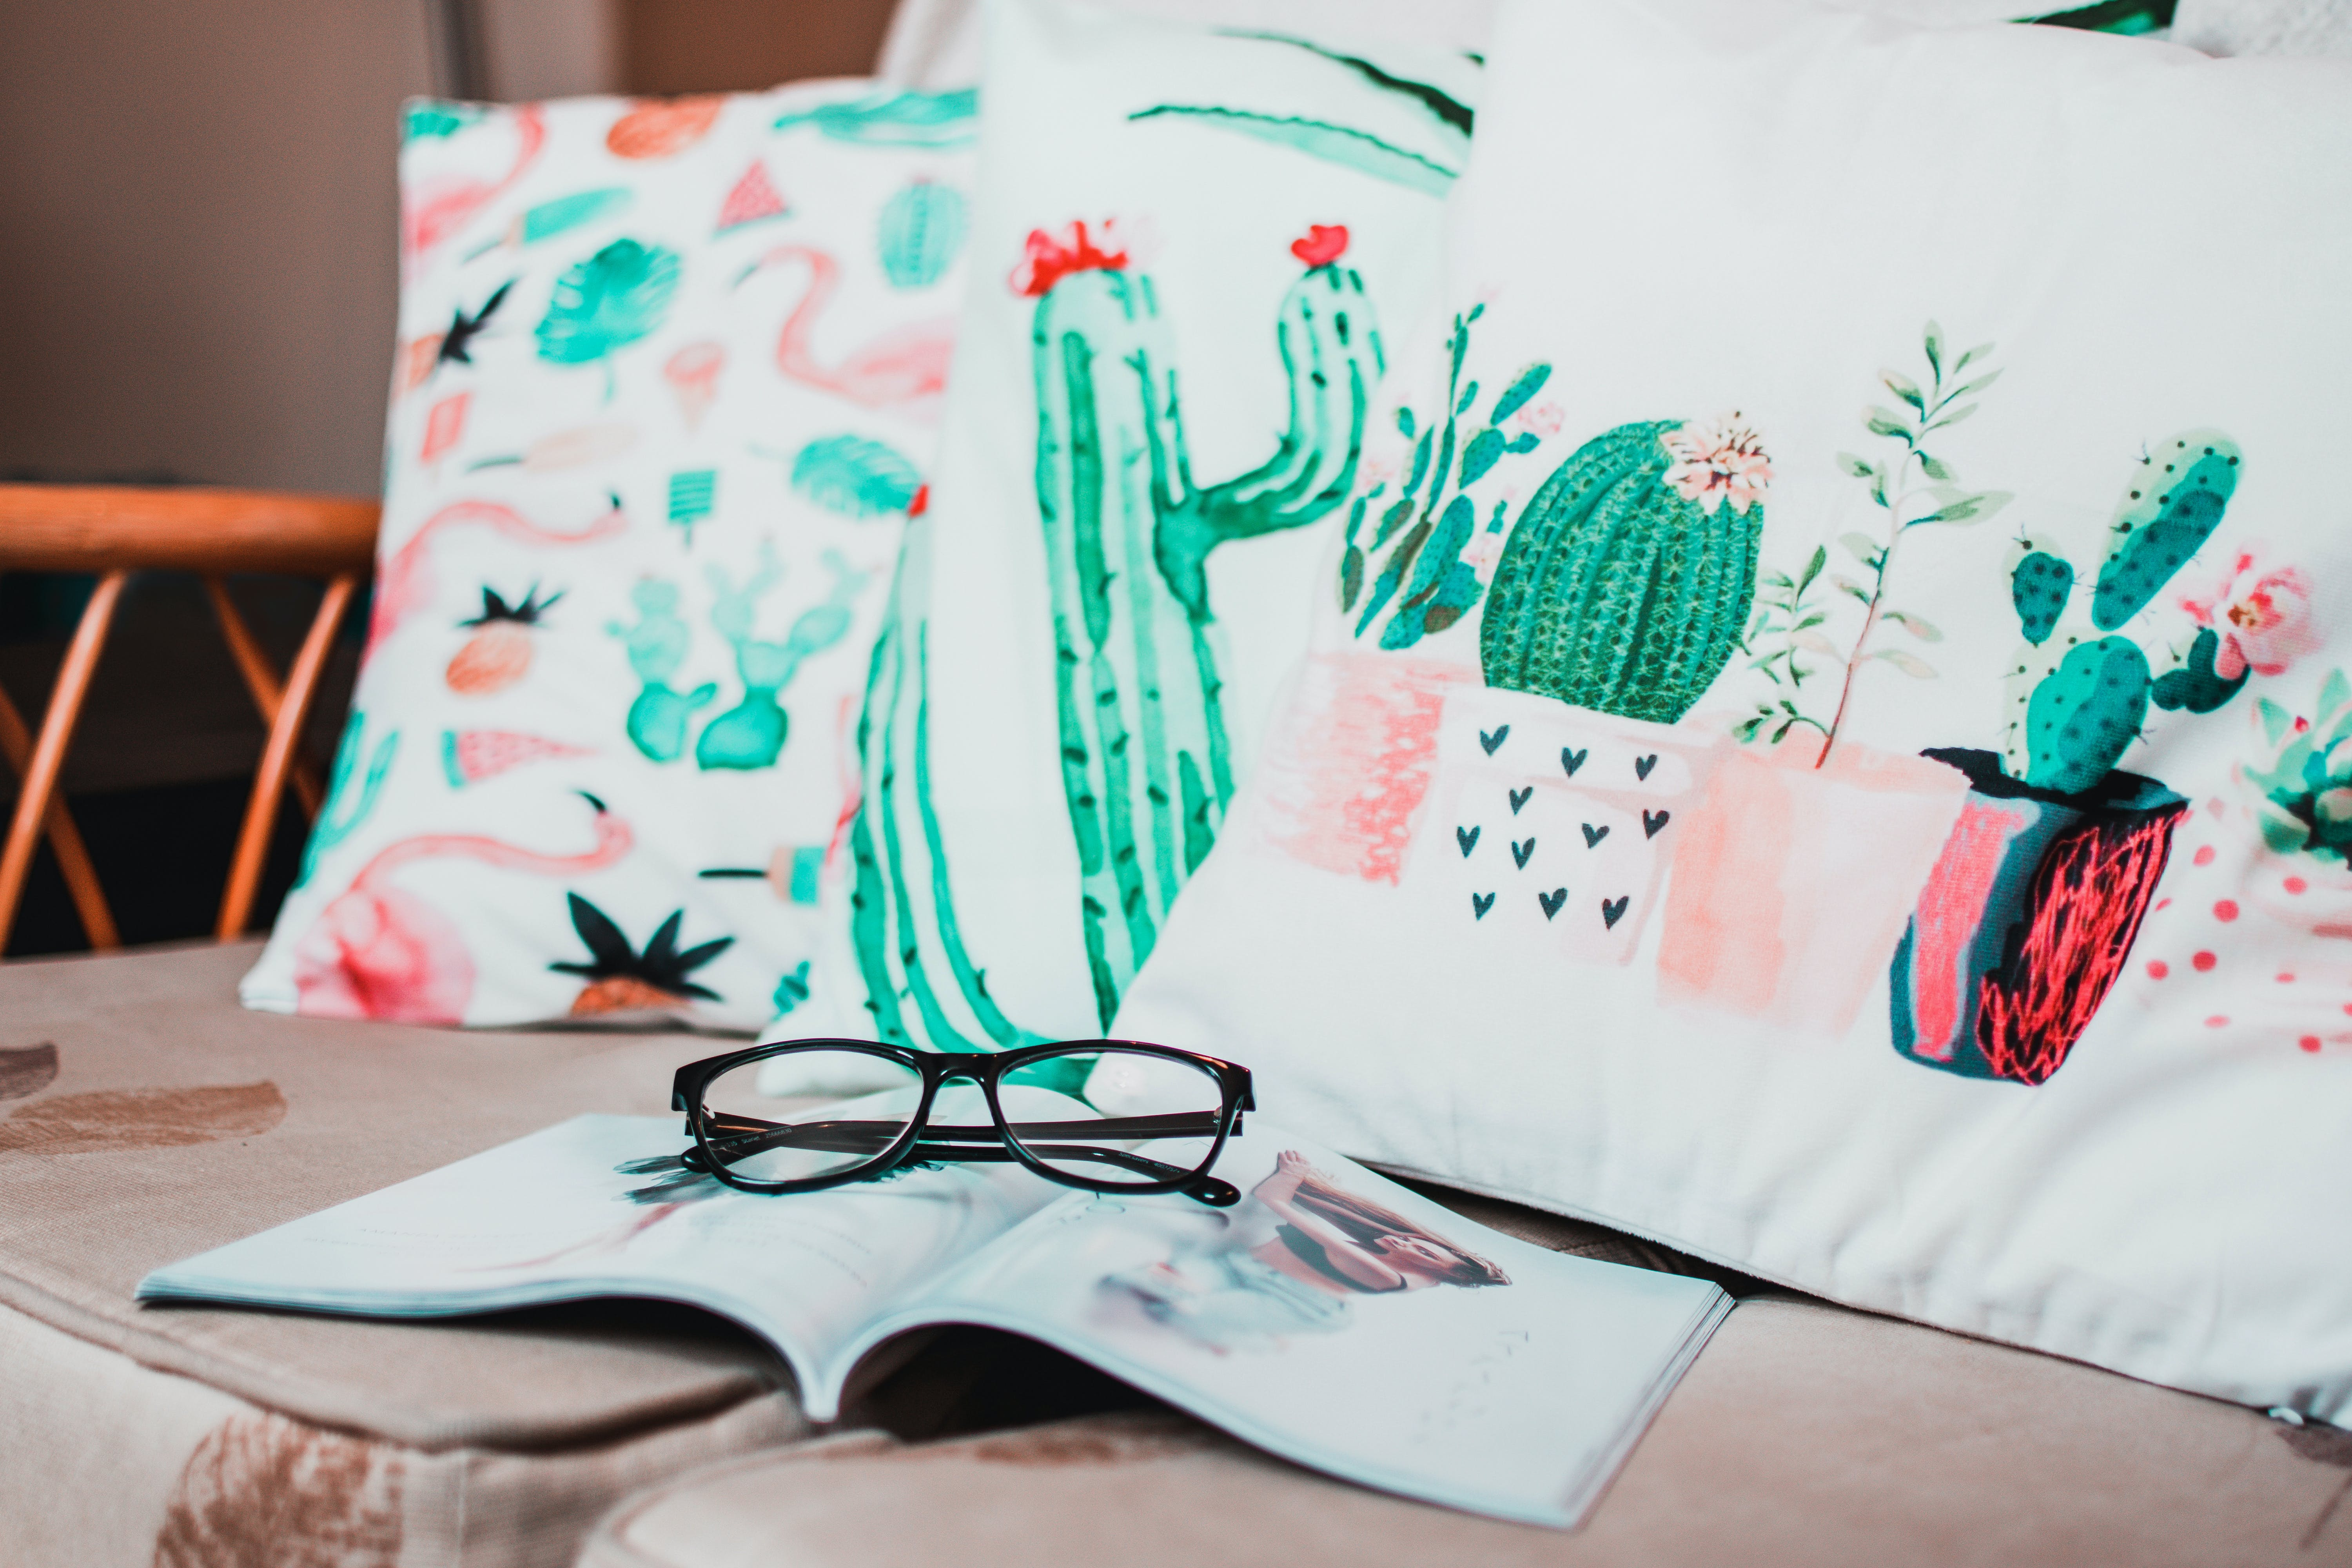 Black Framed Eyeglasses Placed on Opened Book Near Cacti-print Pillows